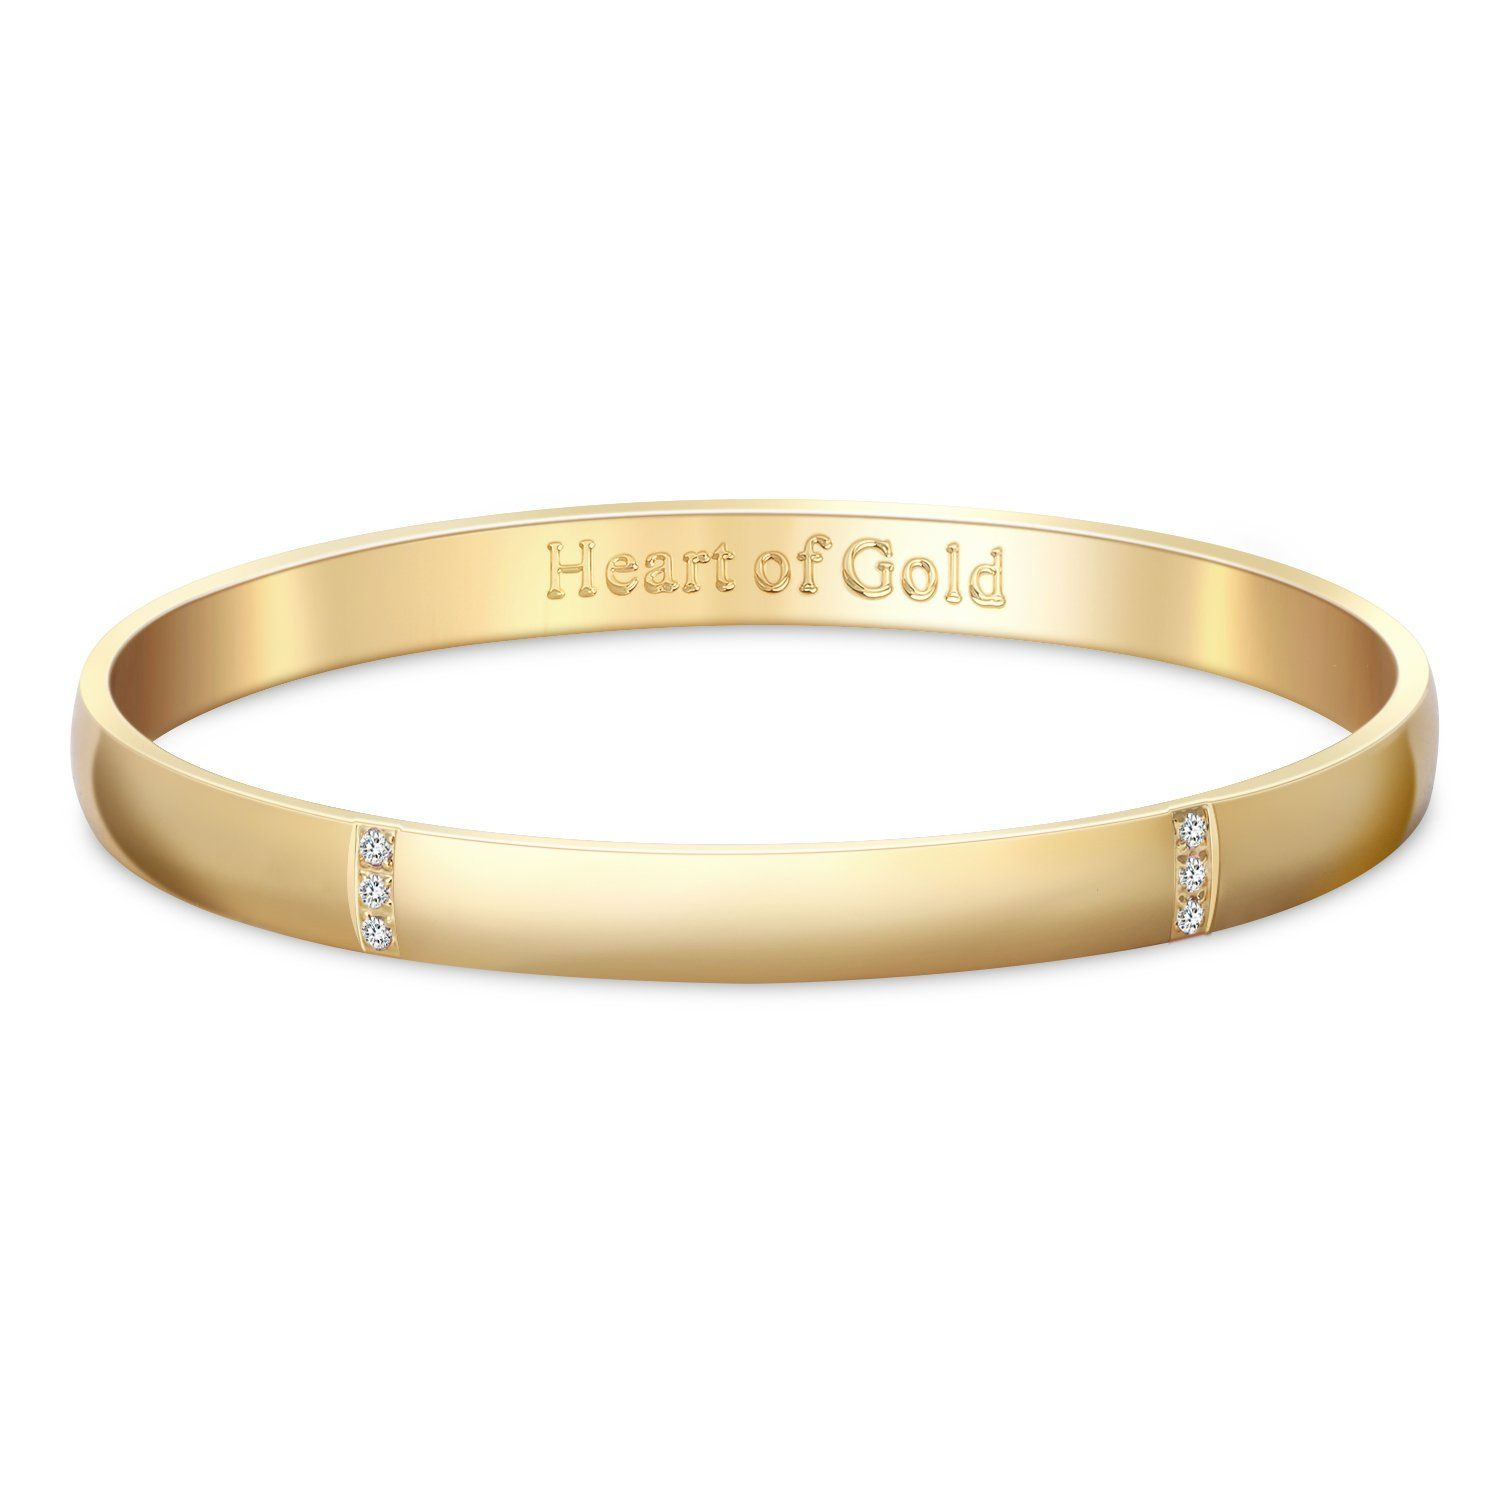 hayluv engraved products free bracelets women collection gold for love of nickel language bracelet bangle bangles hypoallergenic